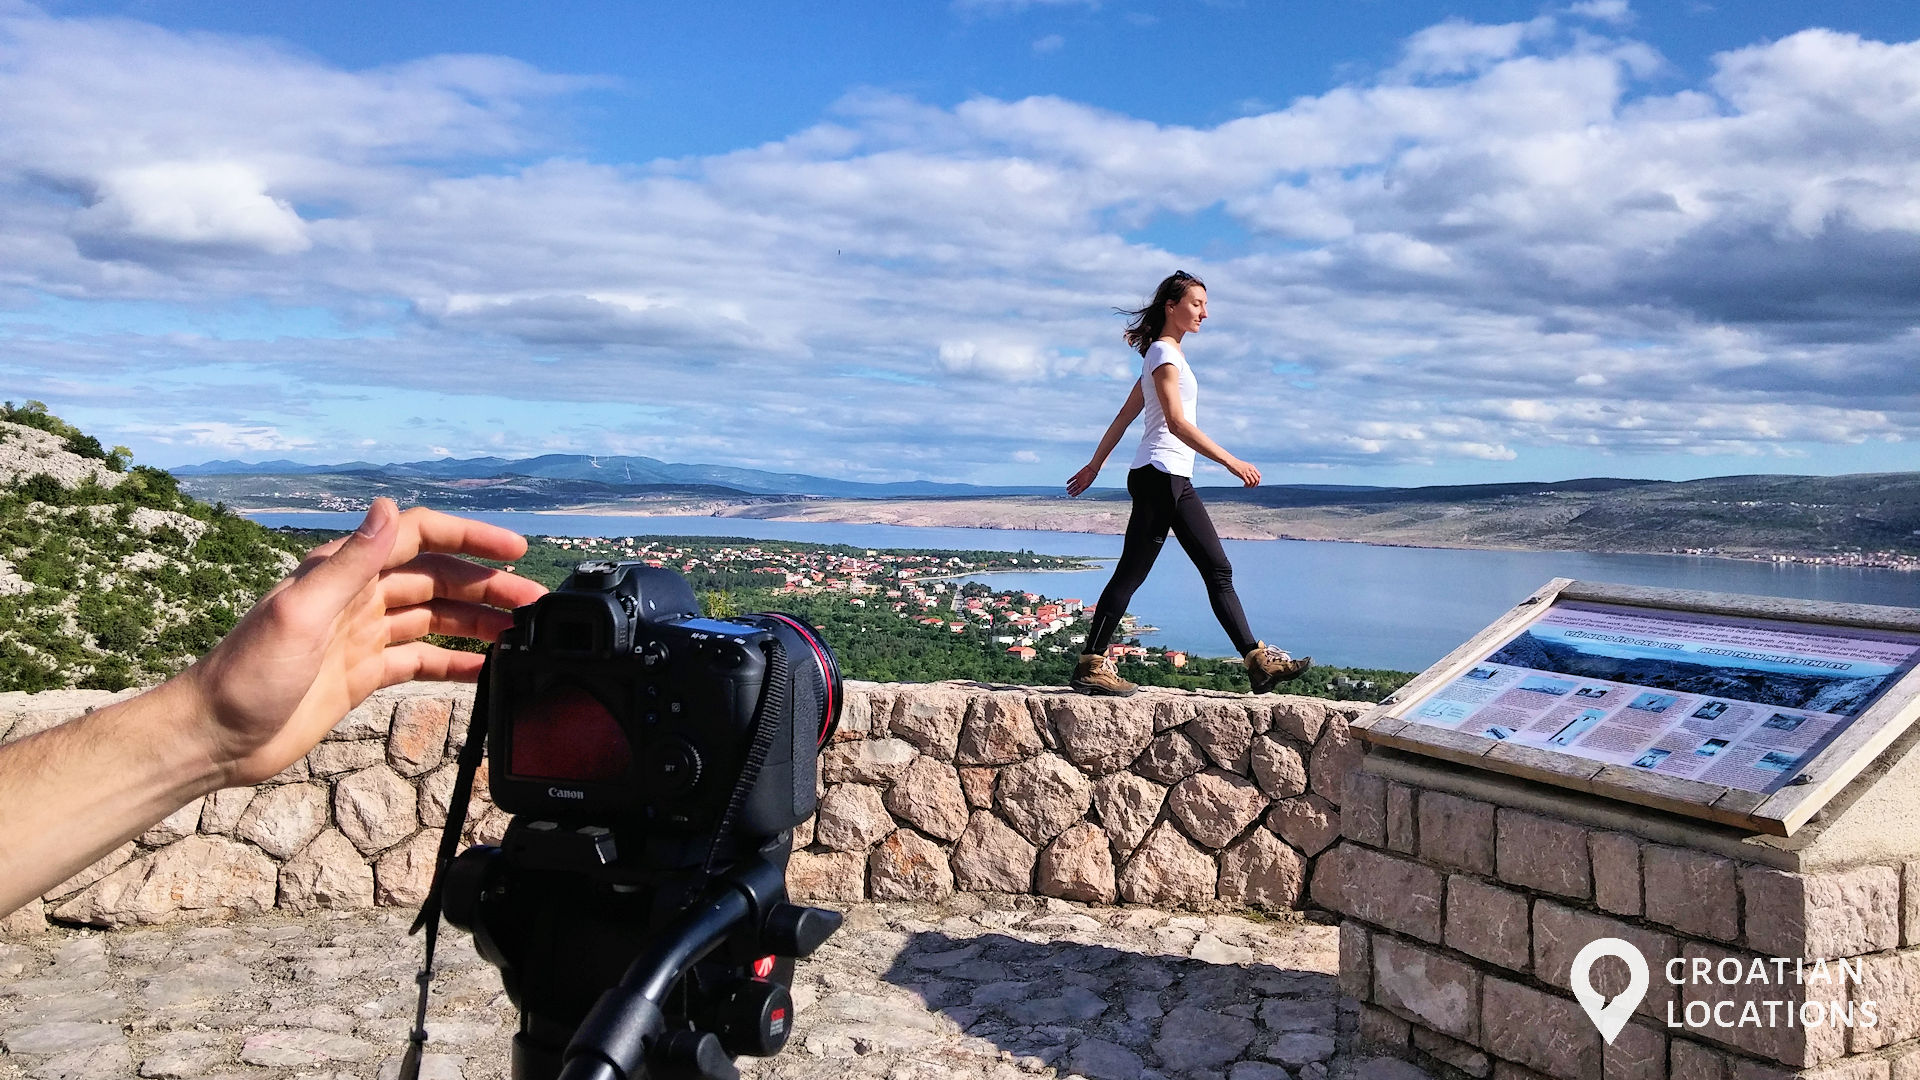 The Croatian Locations production services team enjoys scouting and filming in the great outdoors